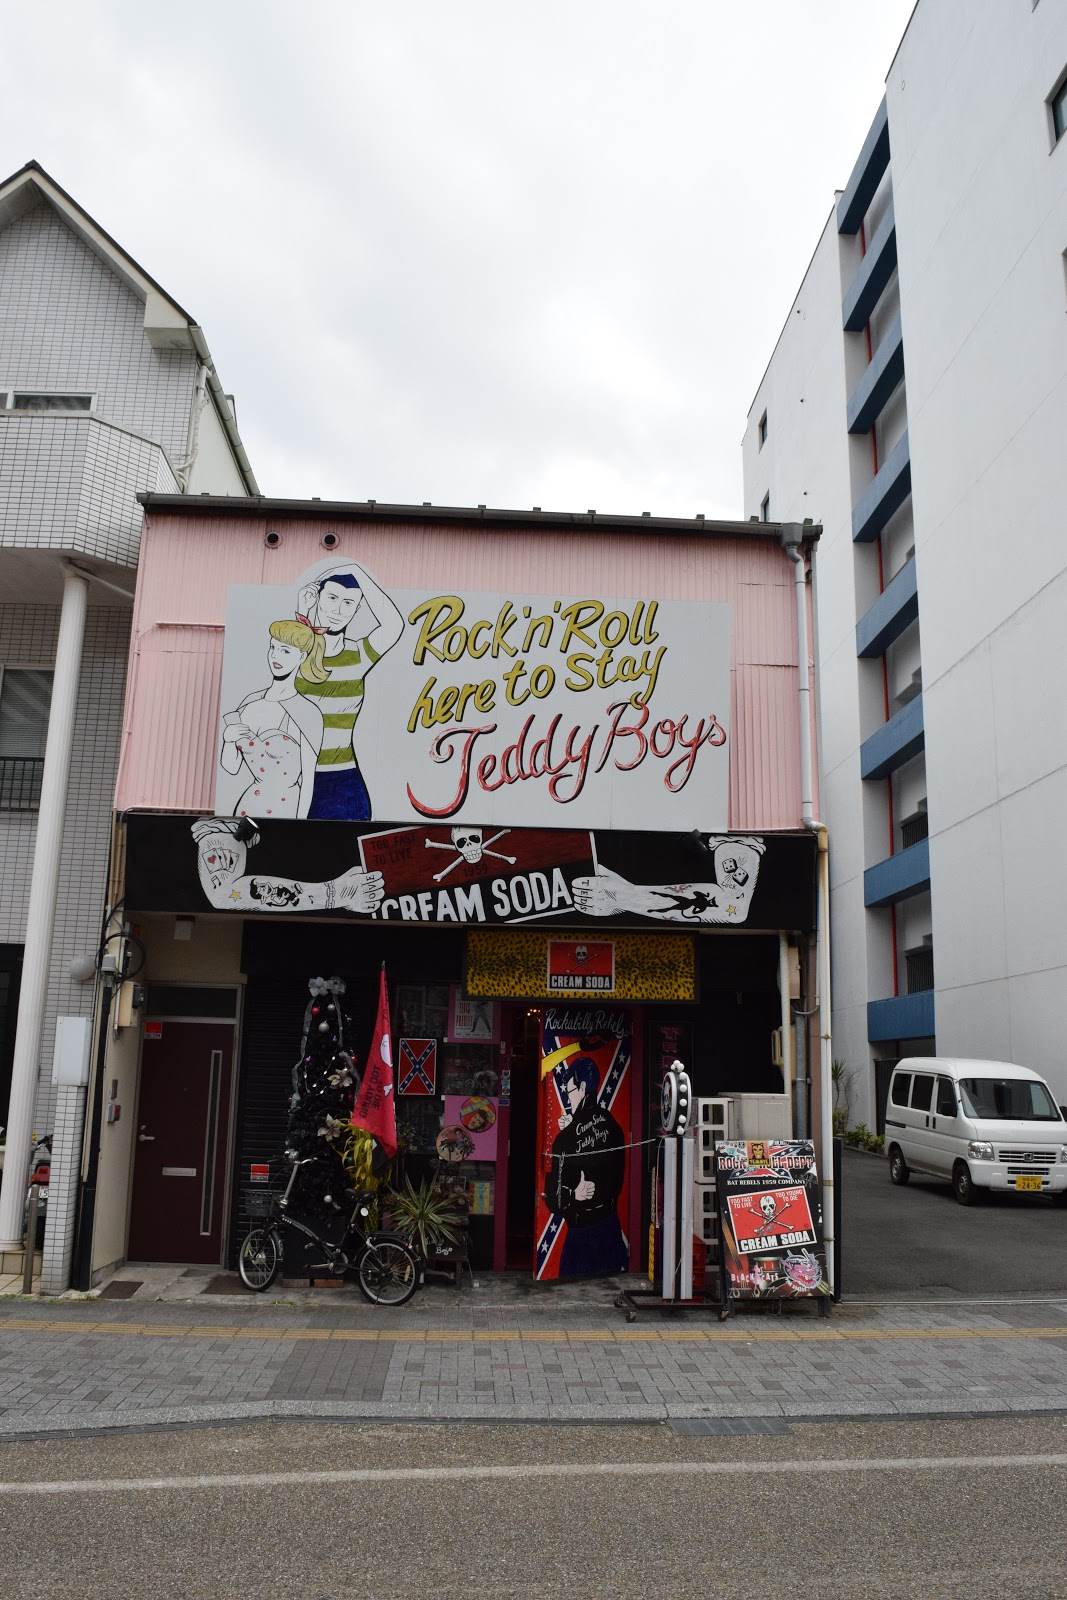 A shop called Cream Soda in Shizuoka, Japan